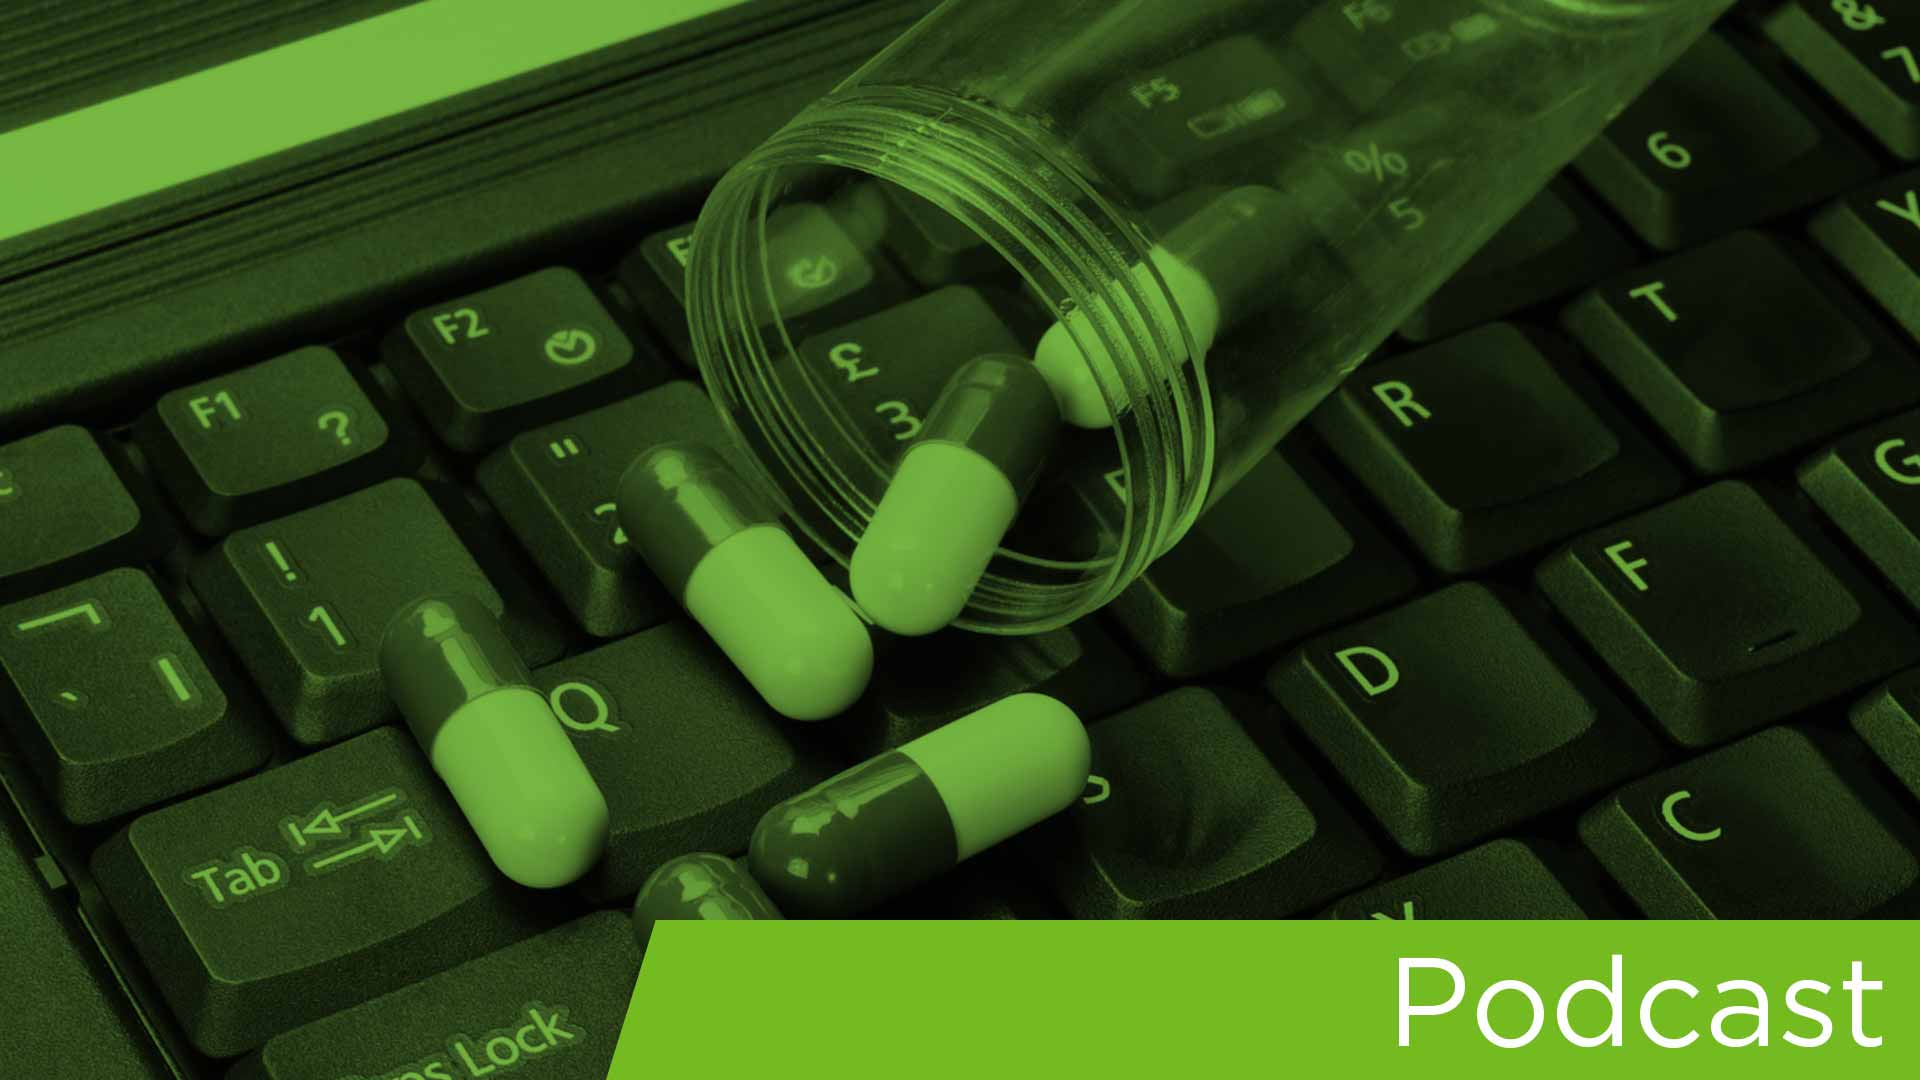 podcast image_pills on keyboard_green overlay